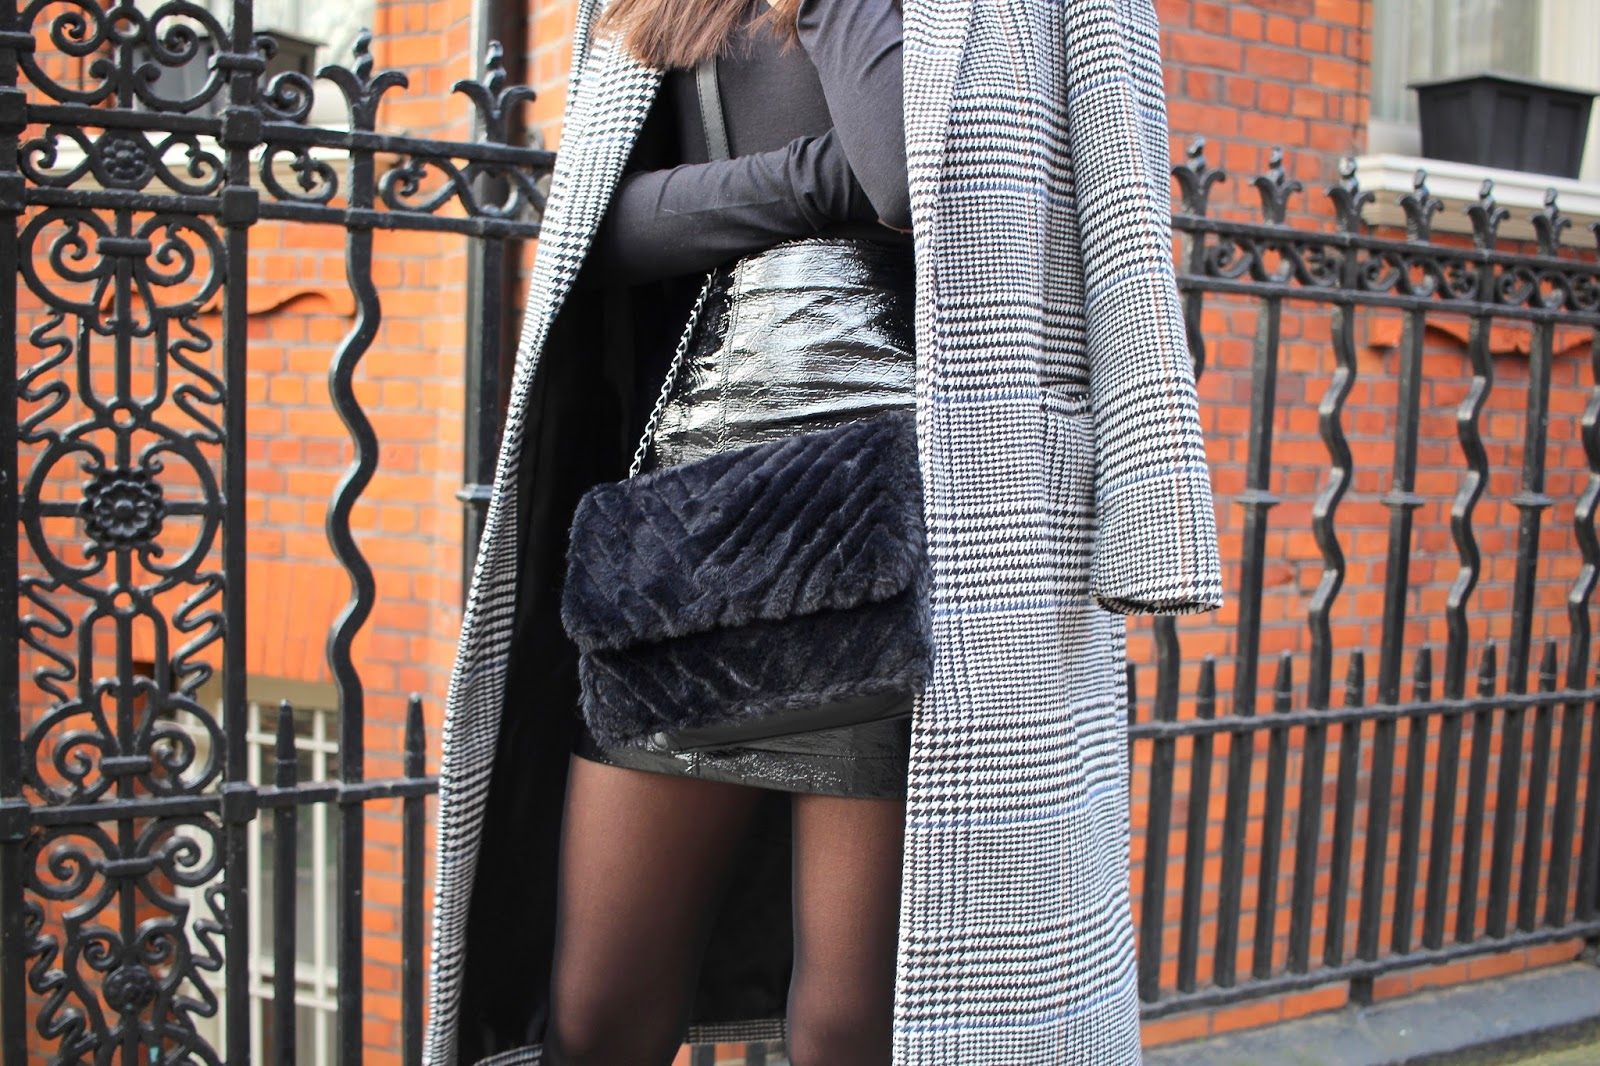 peexo style blogger london going out